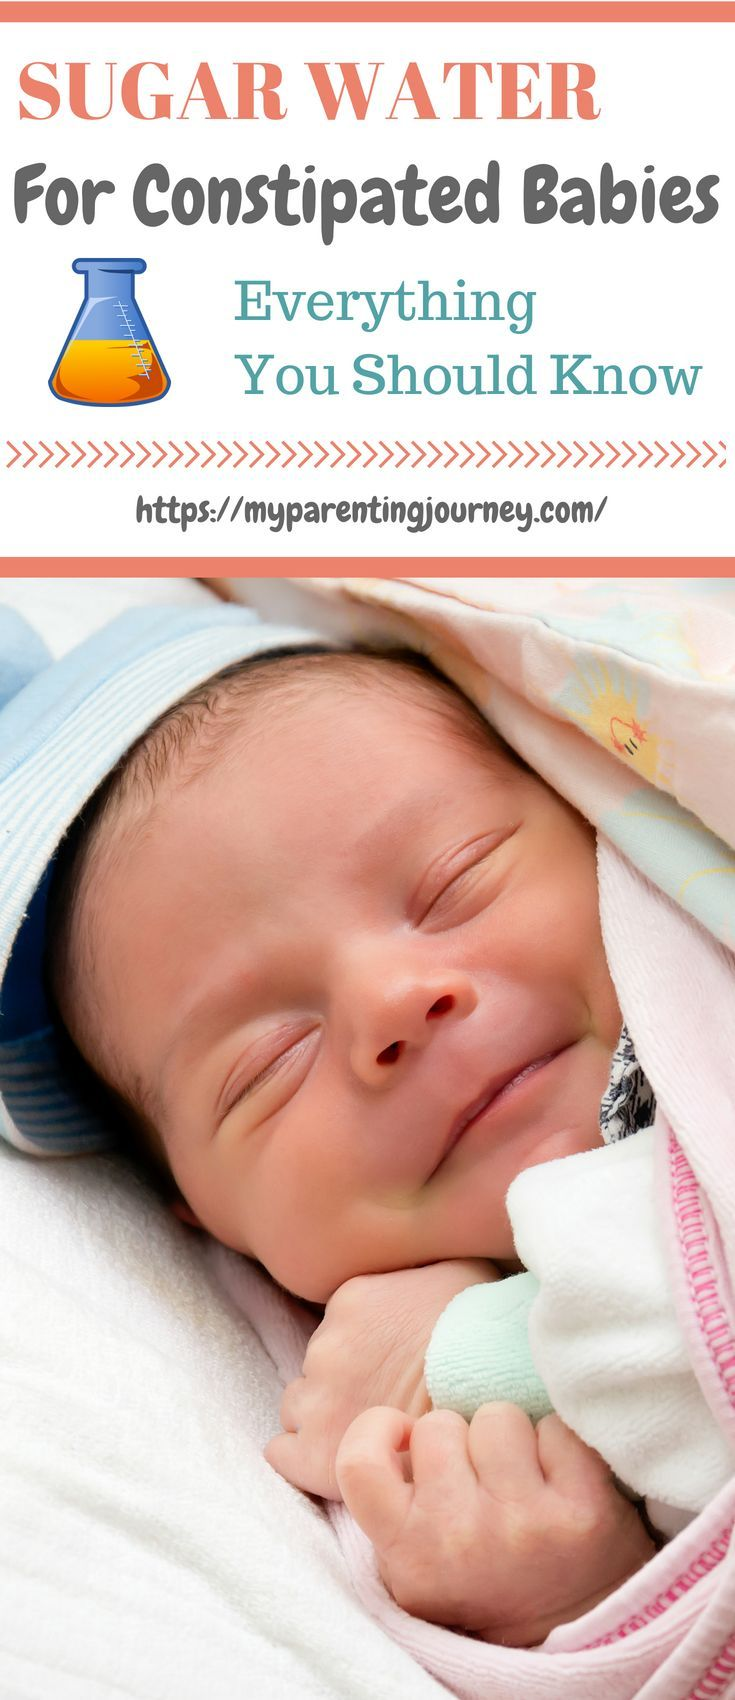 can sugar water help relieve your baby's constipation? 2018 | babies